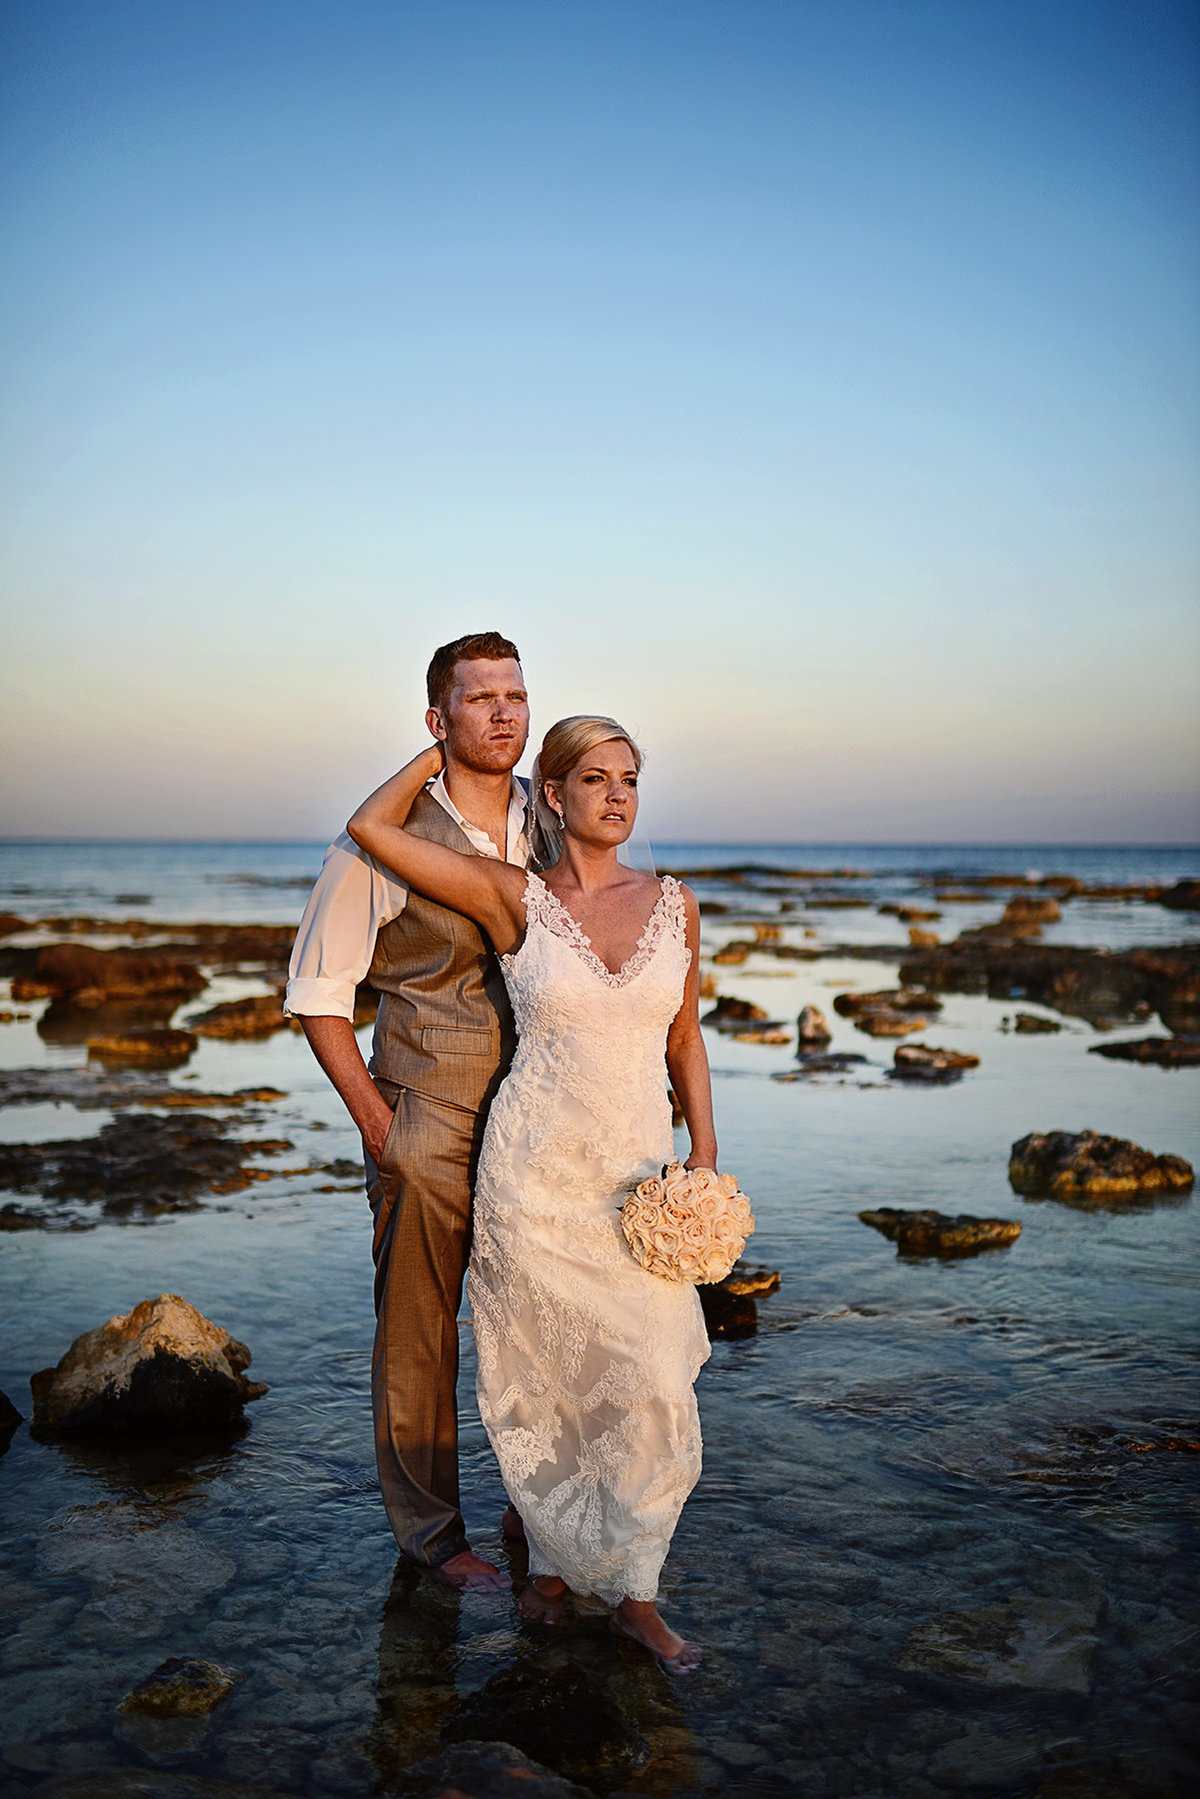 barcelo maya beach resort wedding destination wedding photographer bryan newfield photography 38